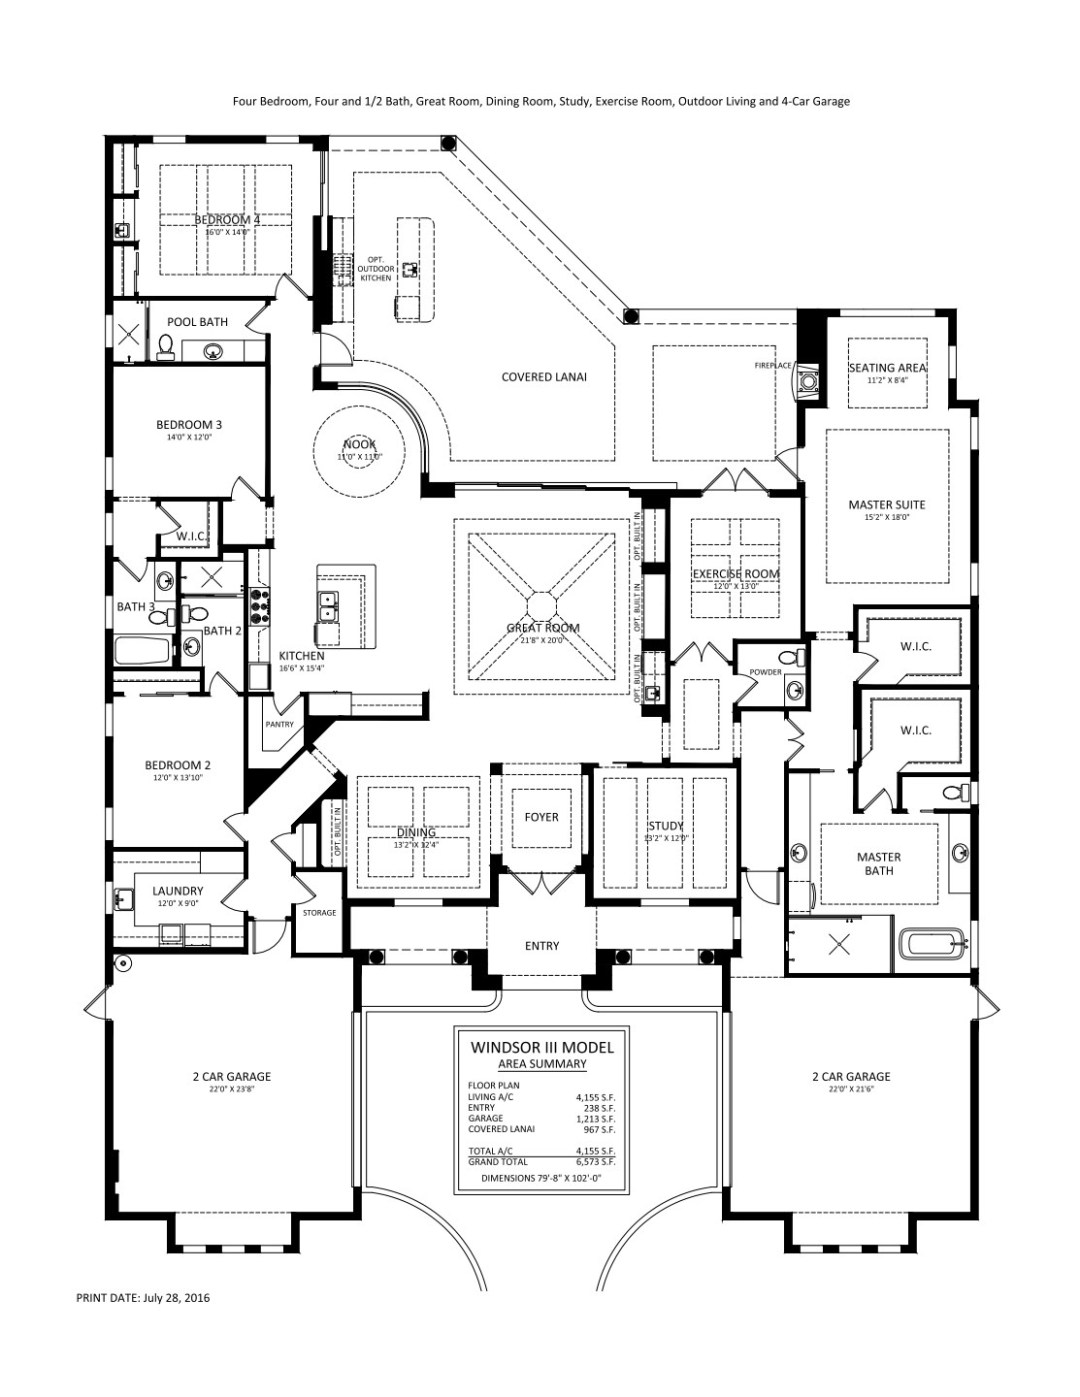 Stock Signature Homes Twin Eagles Windsor III Floor Plan